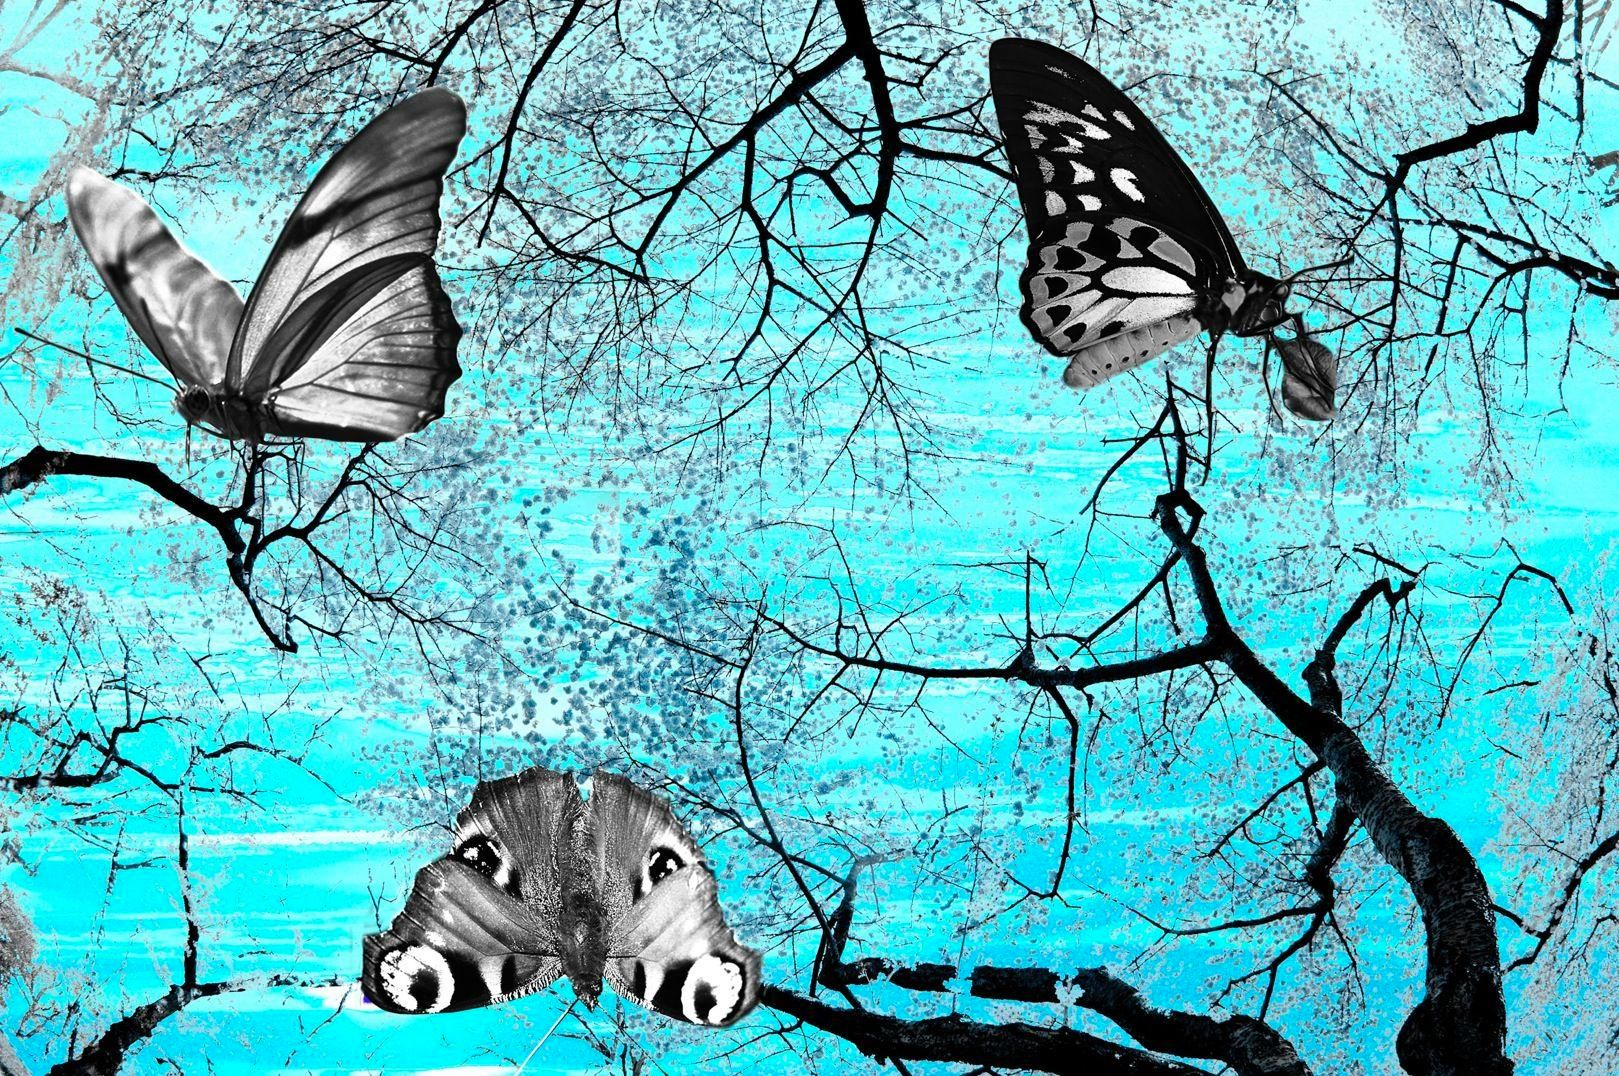 Turquoise Cherry Blossoms with B&W Butterflies